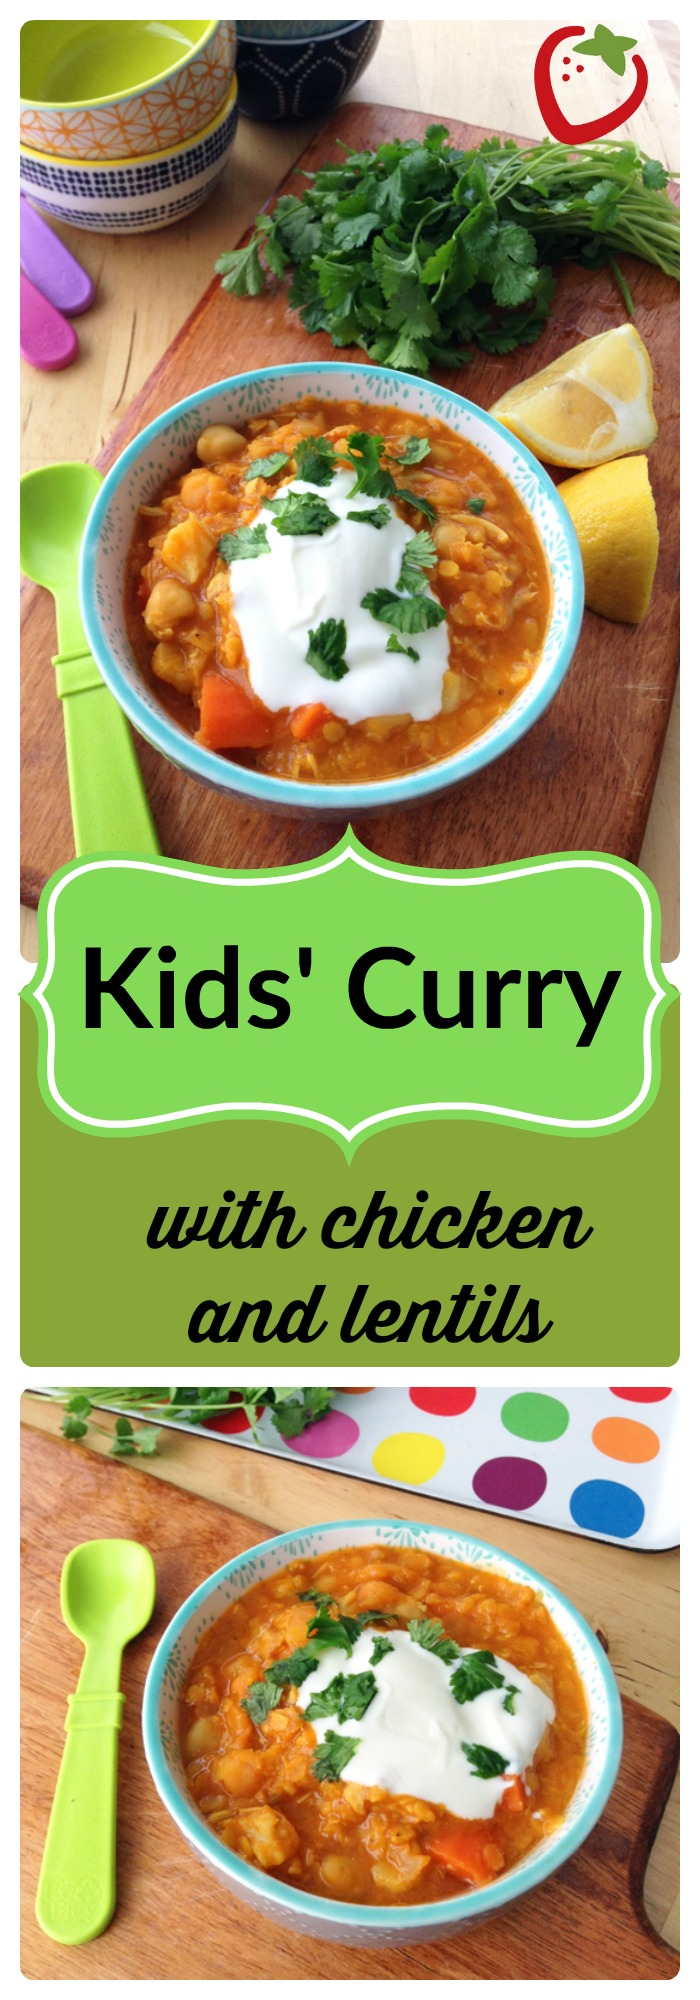 """FOOD - Kids' Curry with Chicken and Lentils. Redefine """"kid-friendly"""" with this mild, warming, healthy curry packed with protein and vegetables. http://www.superhealthykids.com/kids-curry-with-chicken-and-red-lentils/"""